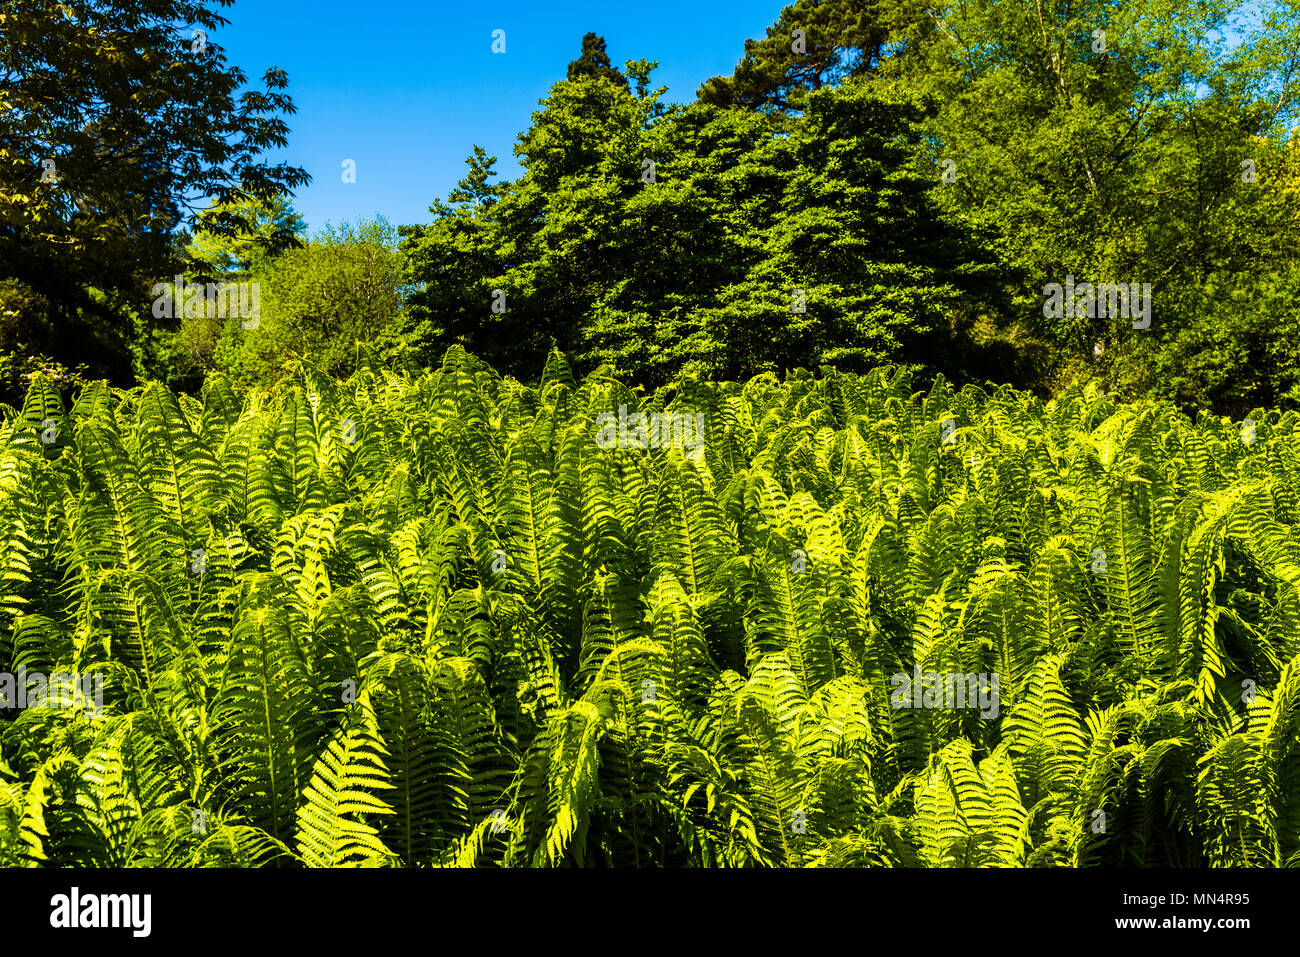 Green ferns at Chartwell, Kent, UK - Stock Image